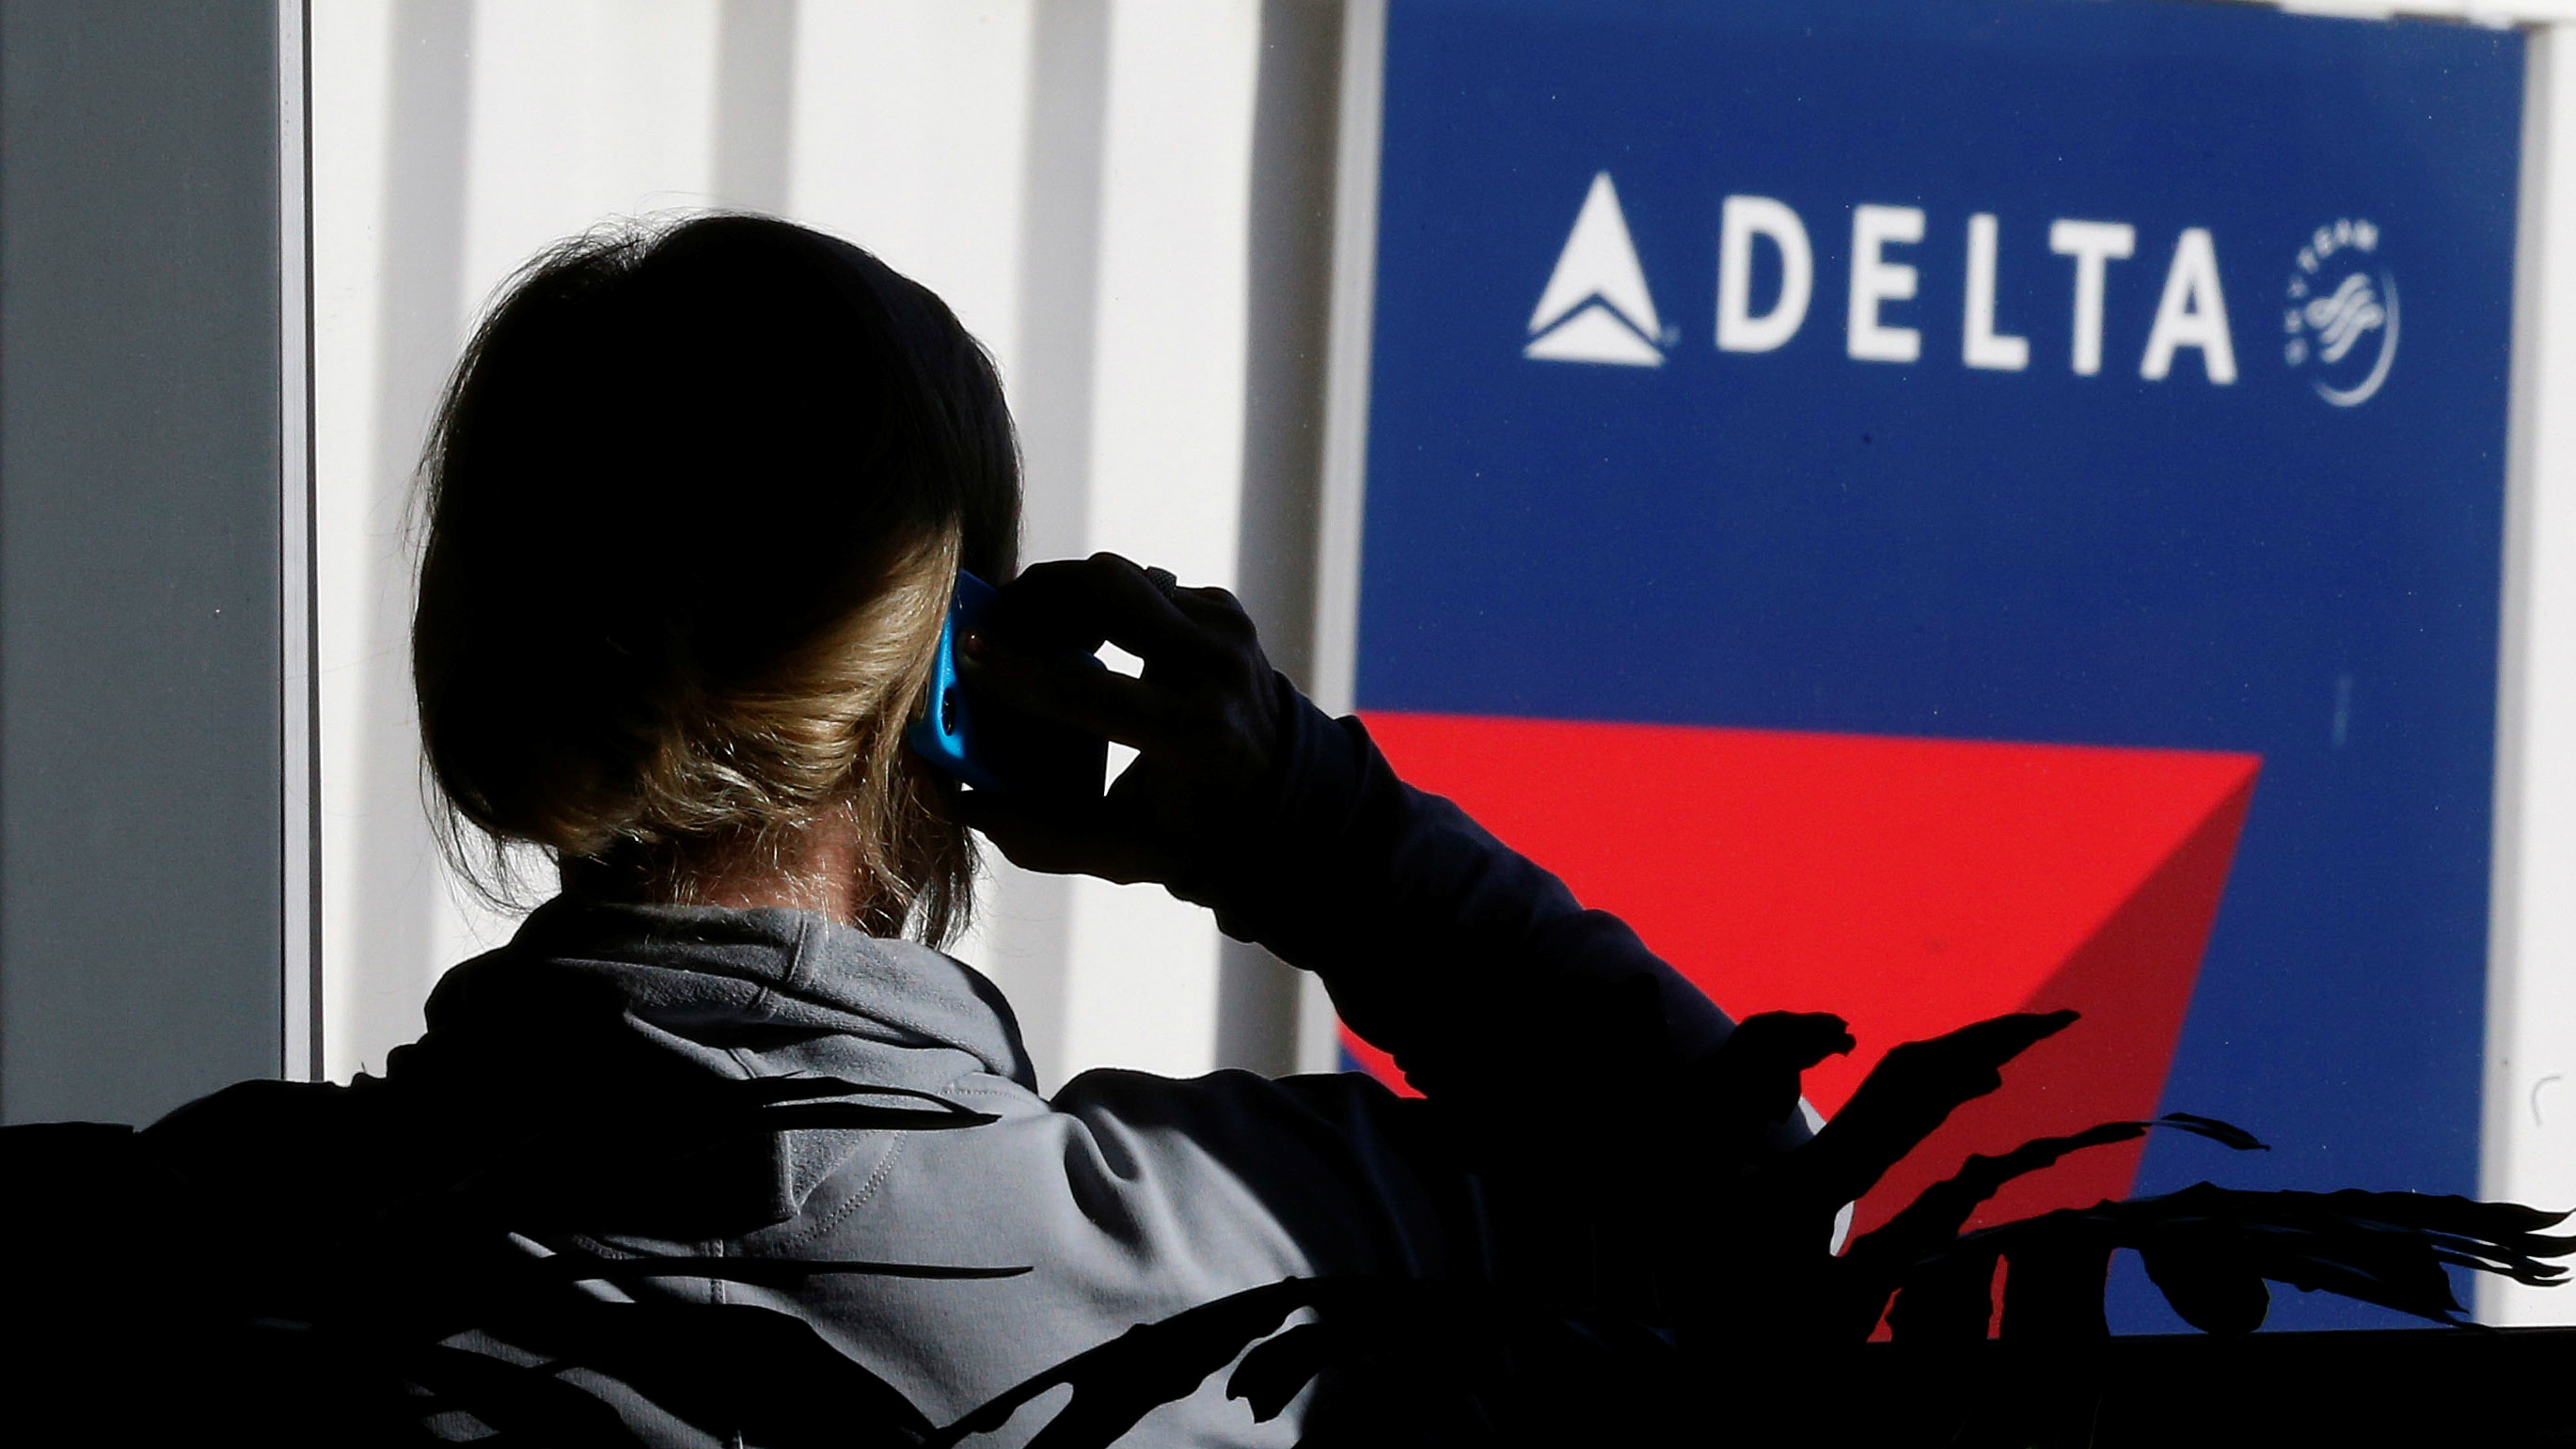 Does Delta Dal Offer Free In Flight Meals To Coach Passengers